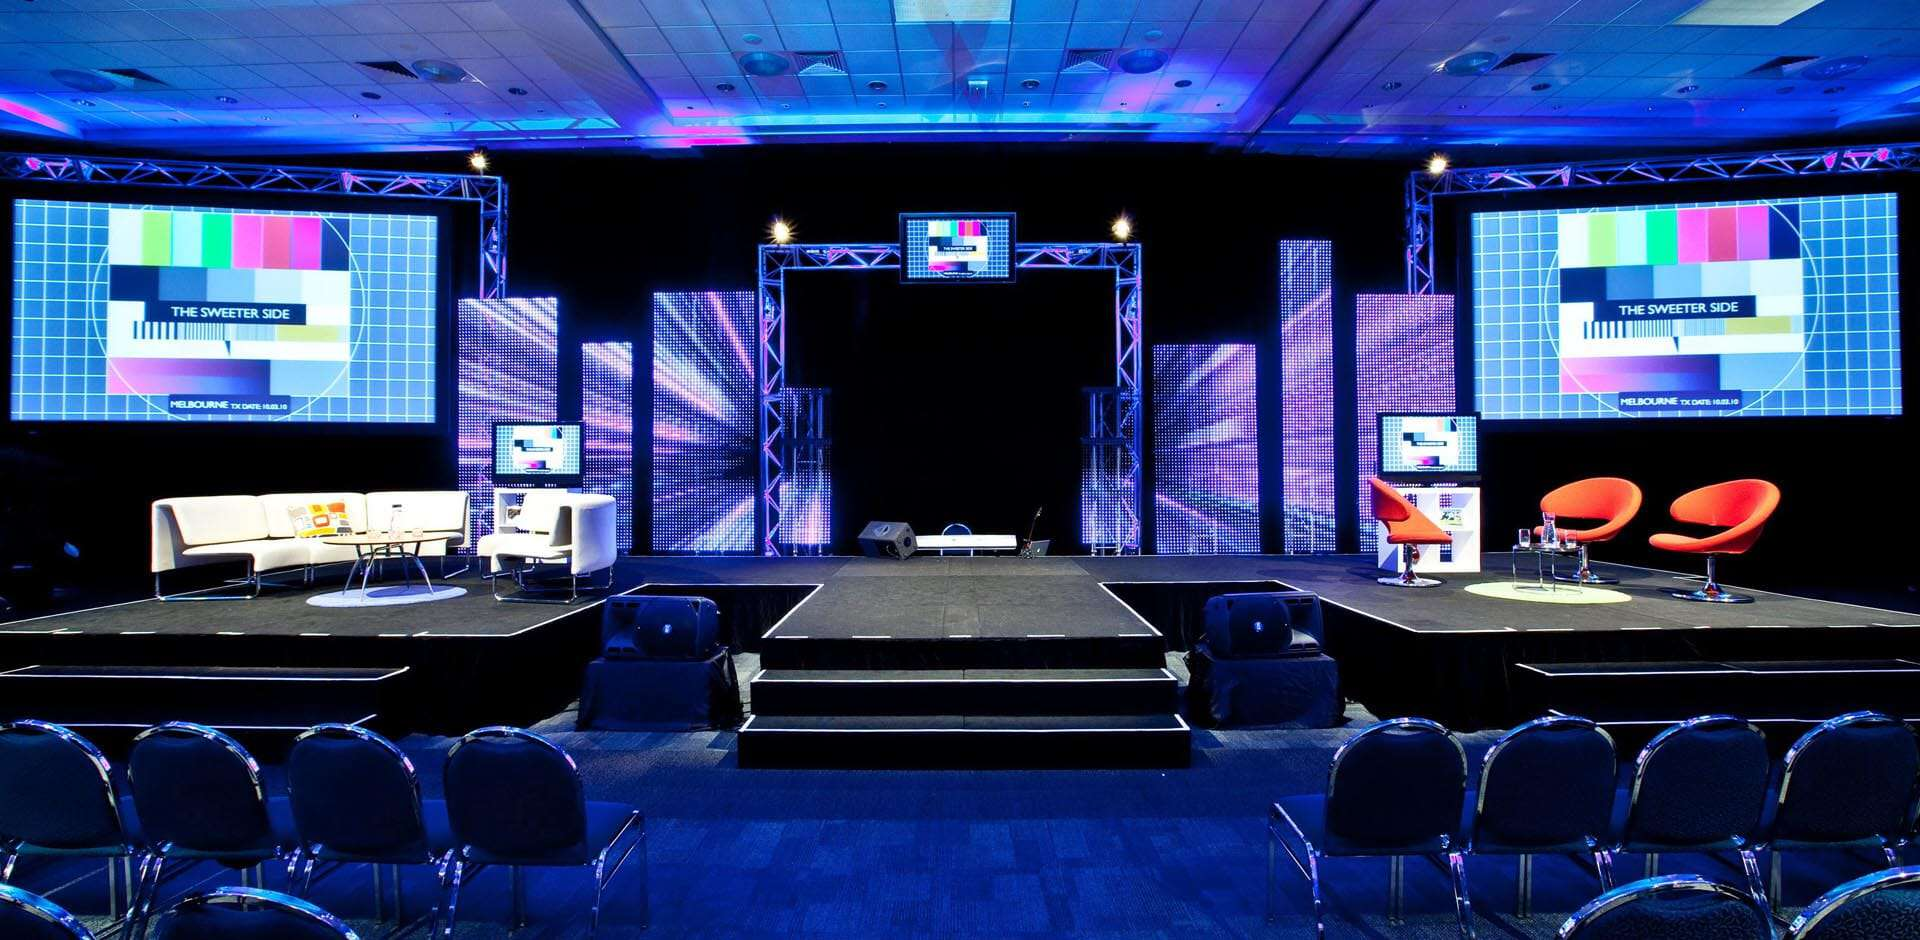 Creative Designs For Event Stages